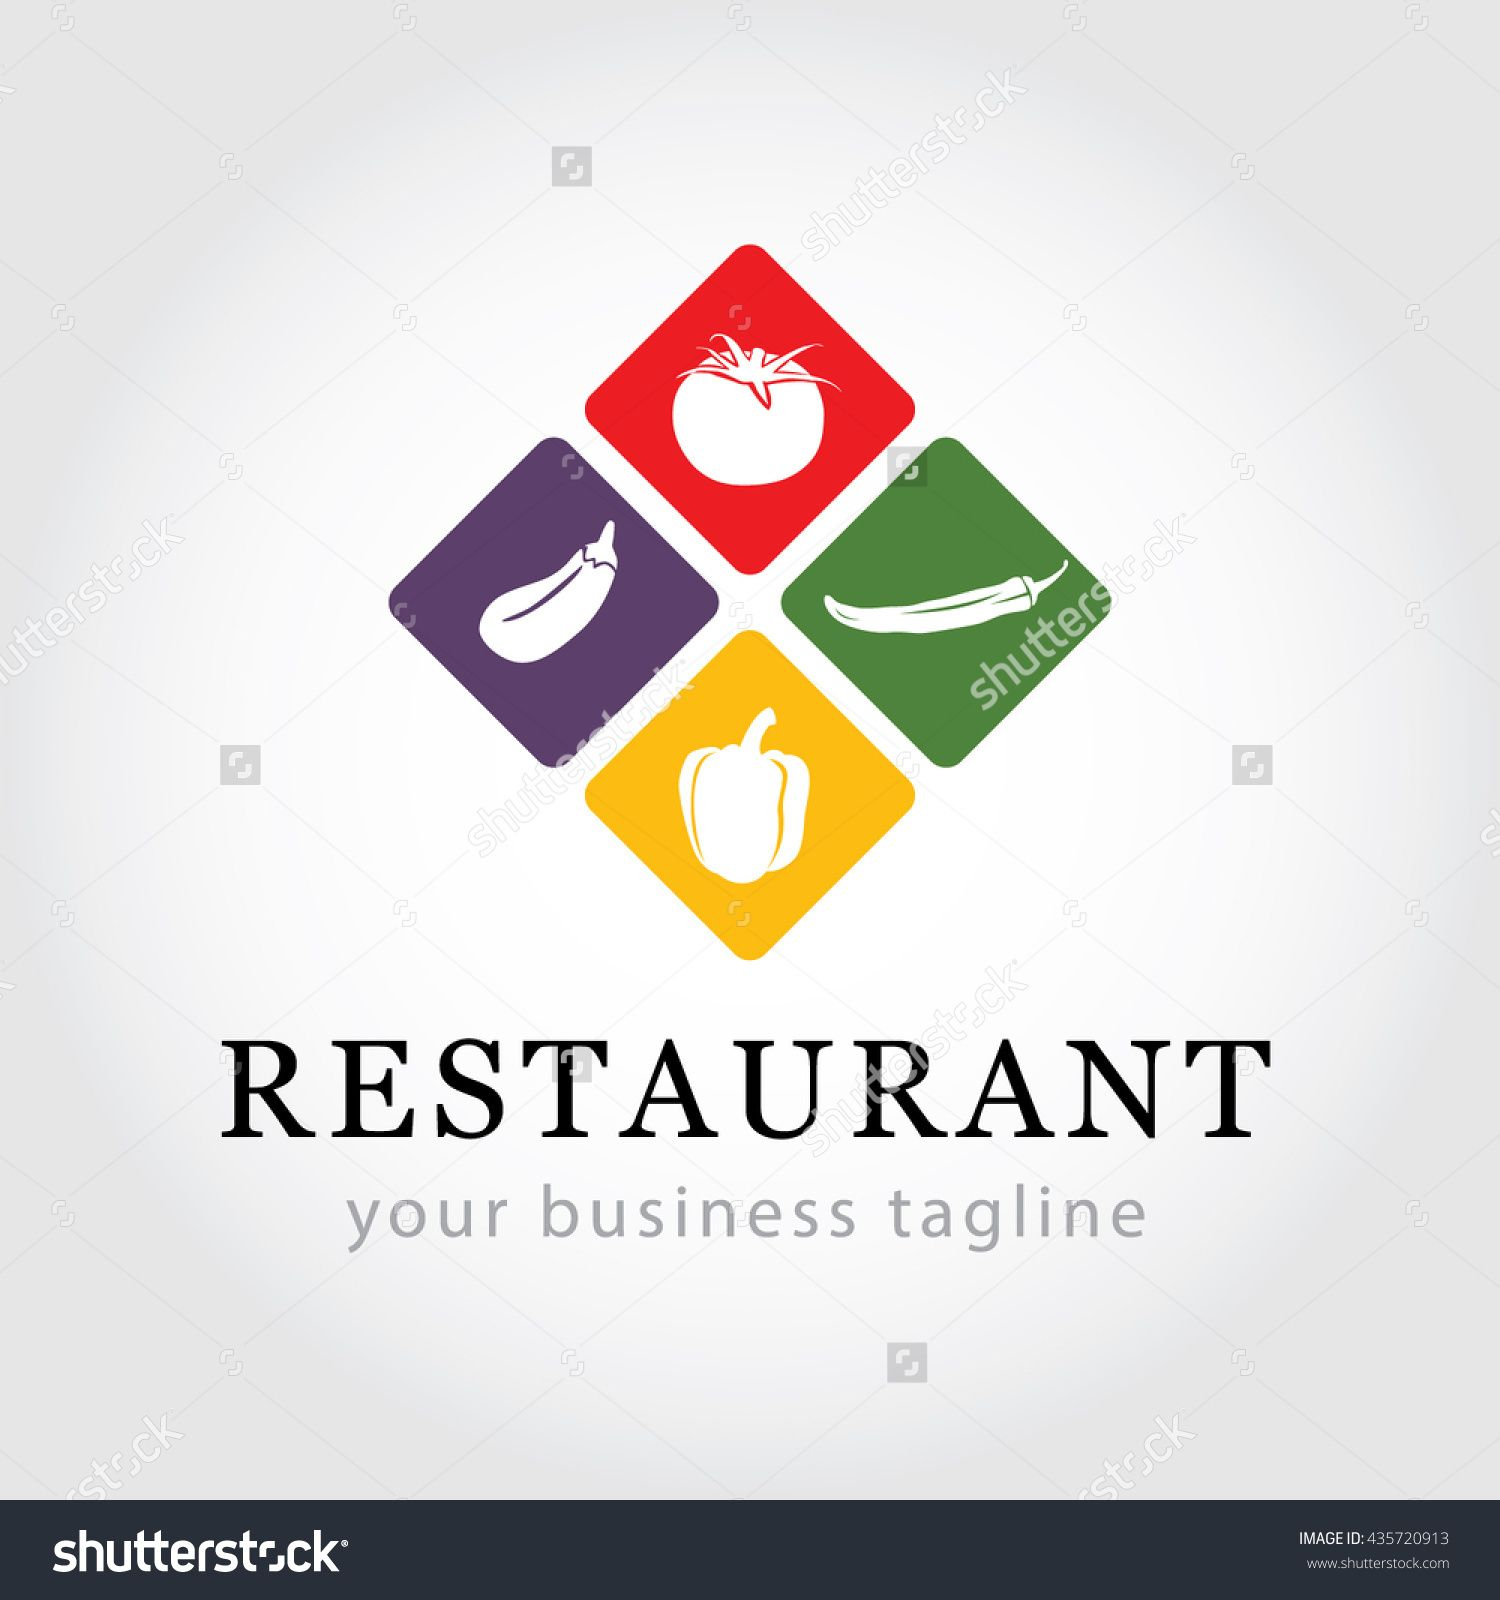 Restaurant Logo Vegetable Icons Food Industry Branding